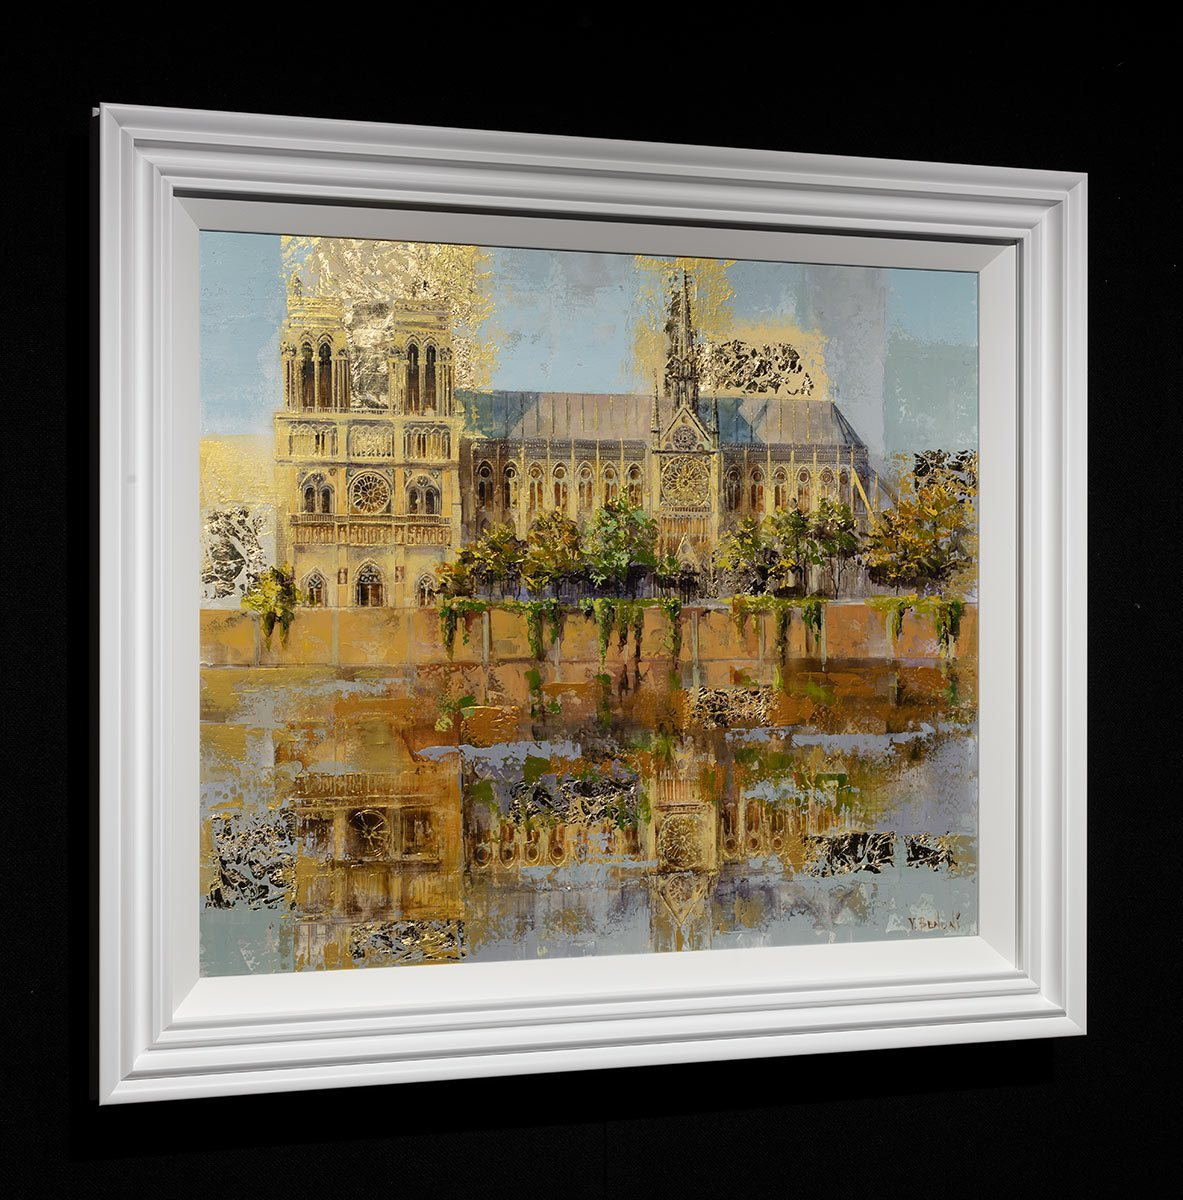 Notre Dame De Paris - Original Veronika Benoni Framed